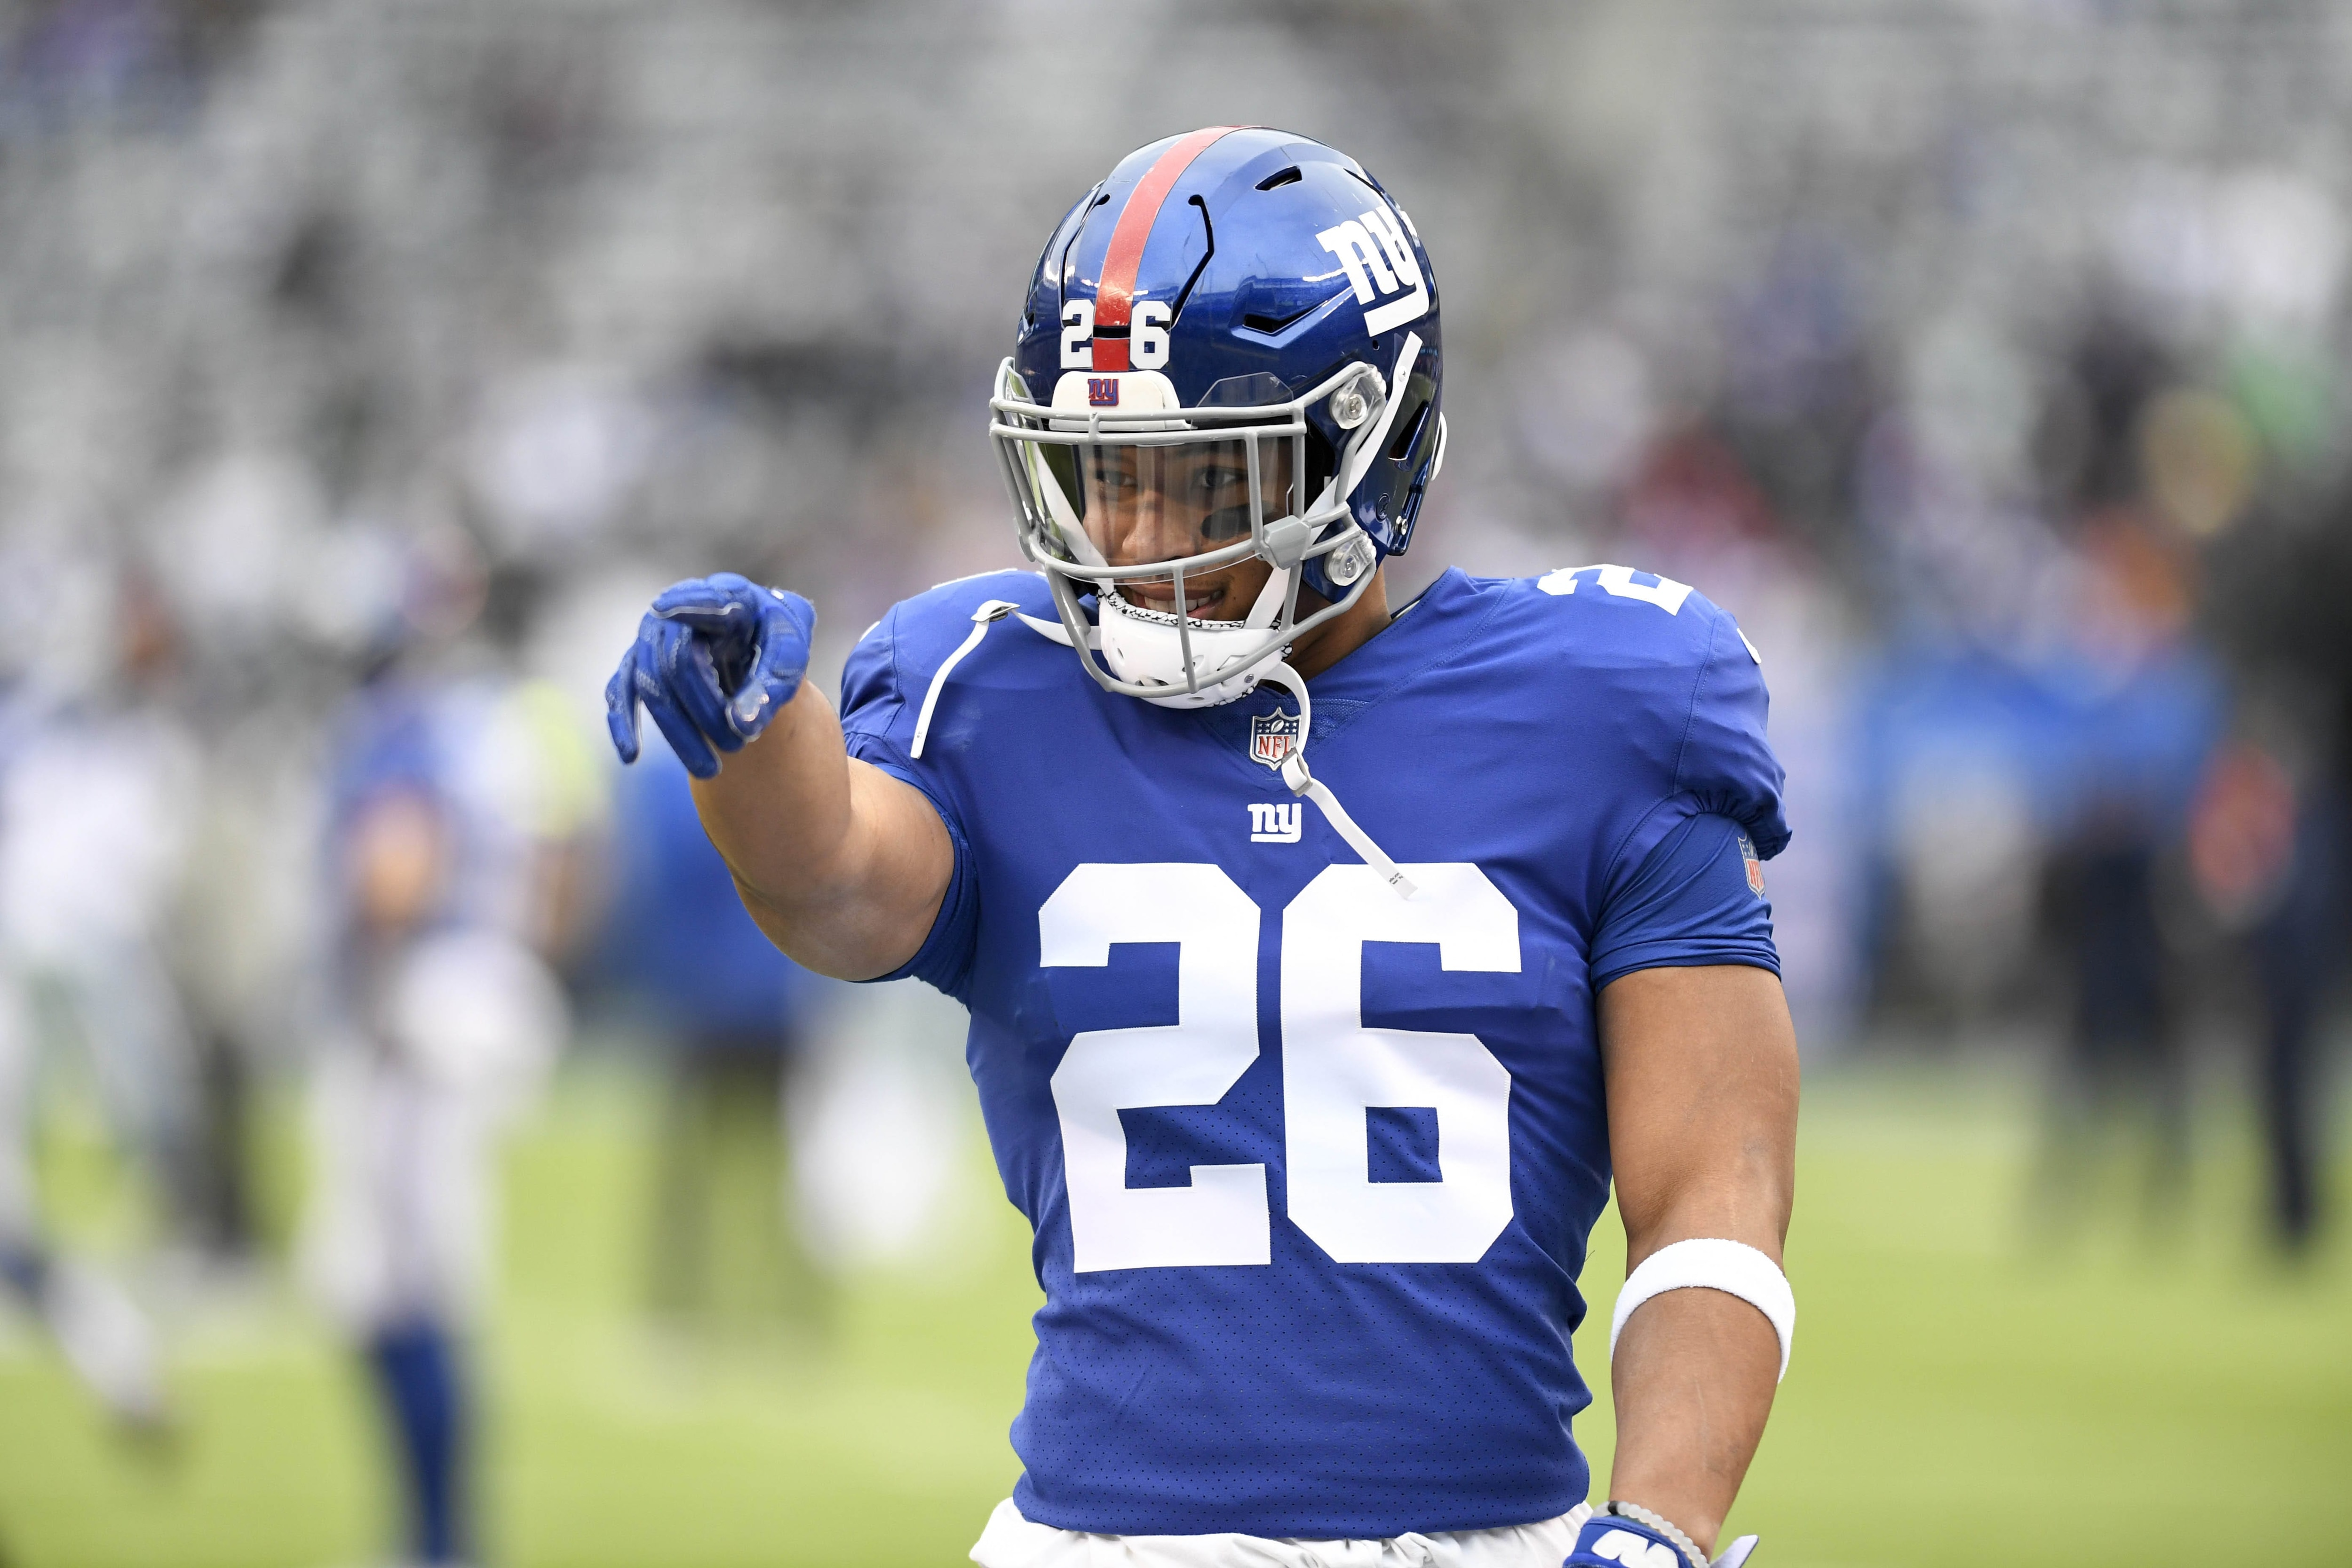 huge selection of 5d336 a62be New York Giants: Saquon Barkley Claims To Be Top RB In The ...